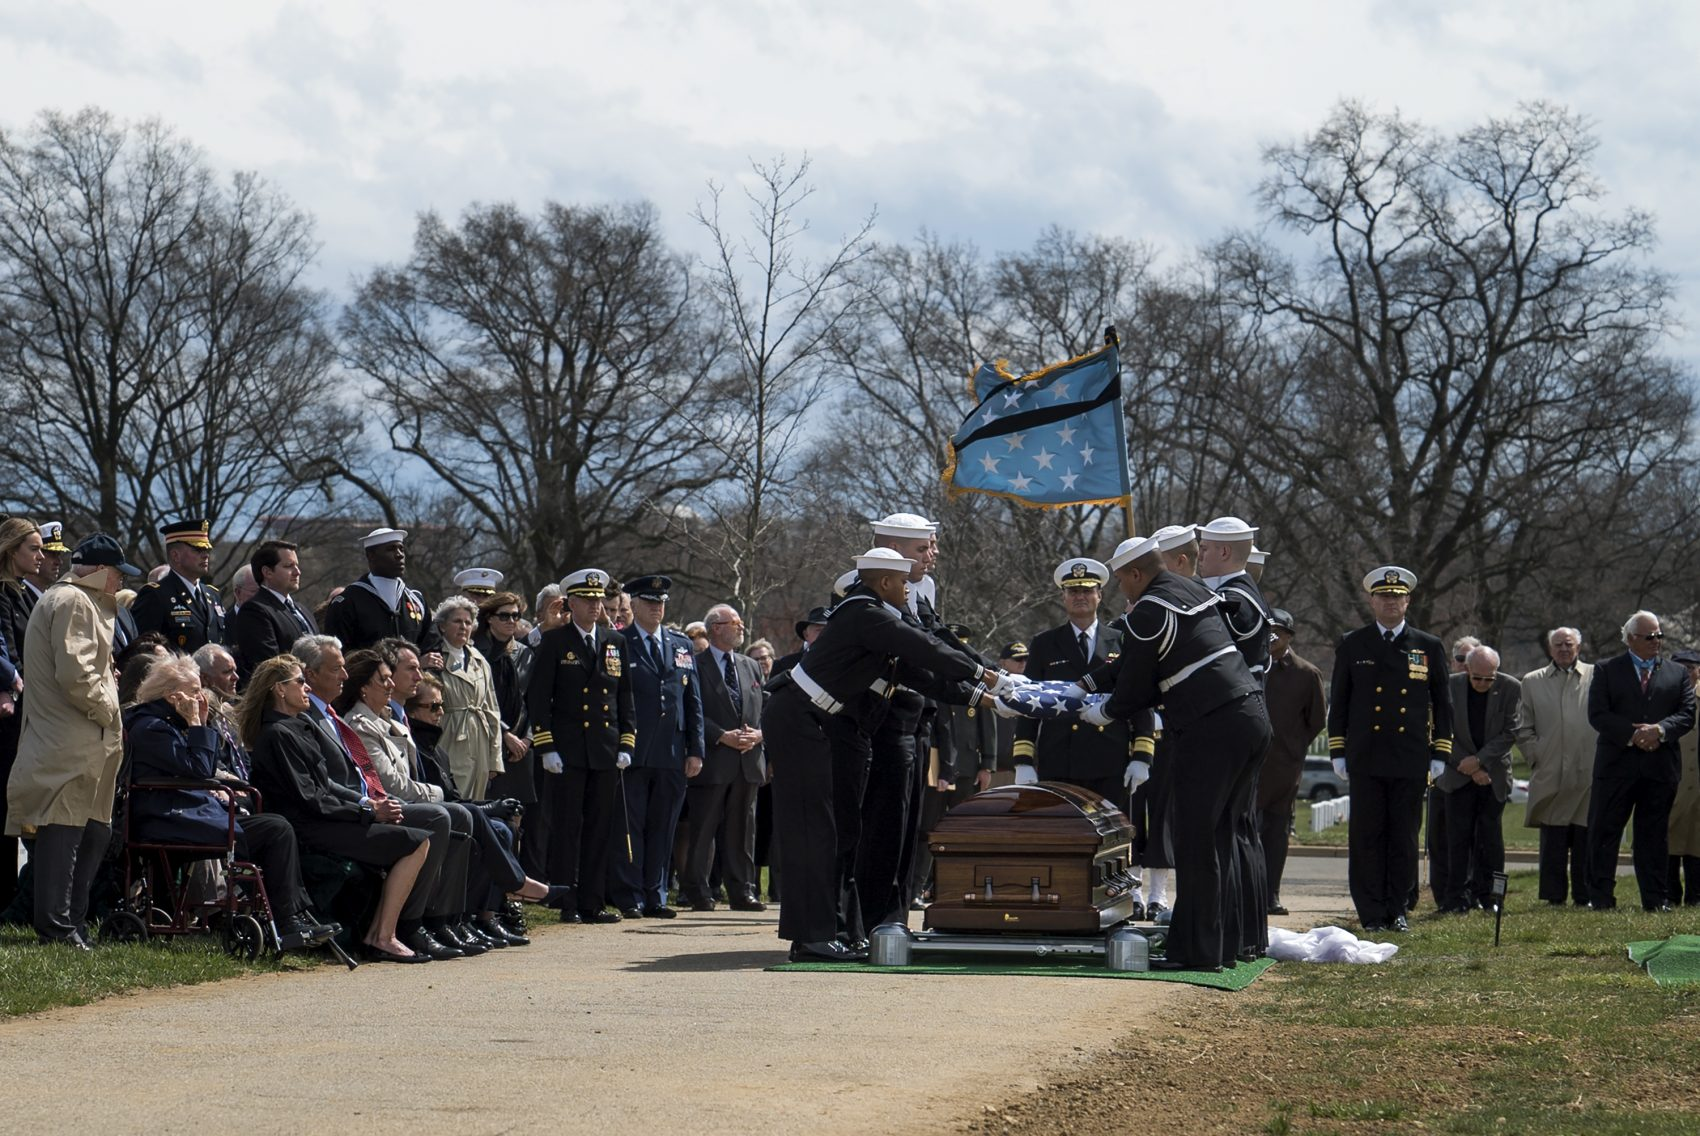 Navy Capt. Thomas Hudner Jr. is laid to rest at Arlington National Cemetery on April 4. Hudner was a naval aviator who was awarded Medal of Honor during the Korean War. (Eslah Attar/NPR)